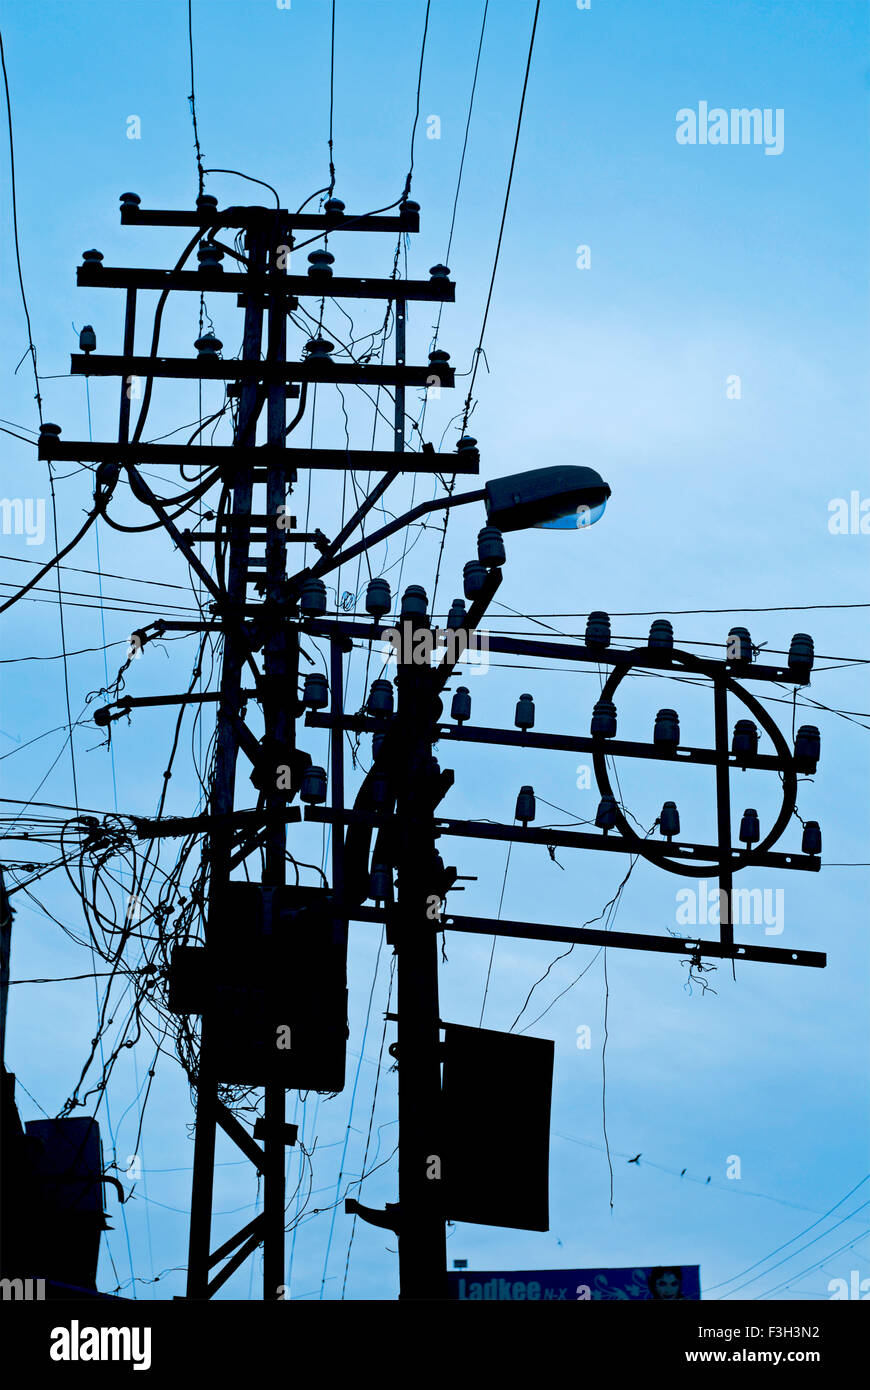 Chaos of electric wires suspended on poles at Rajkot ; Gujarat ; India - Stock Image